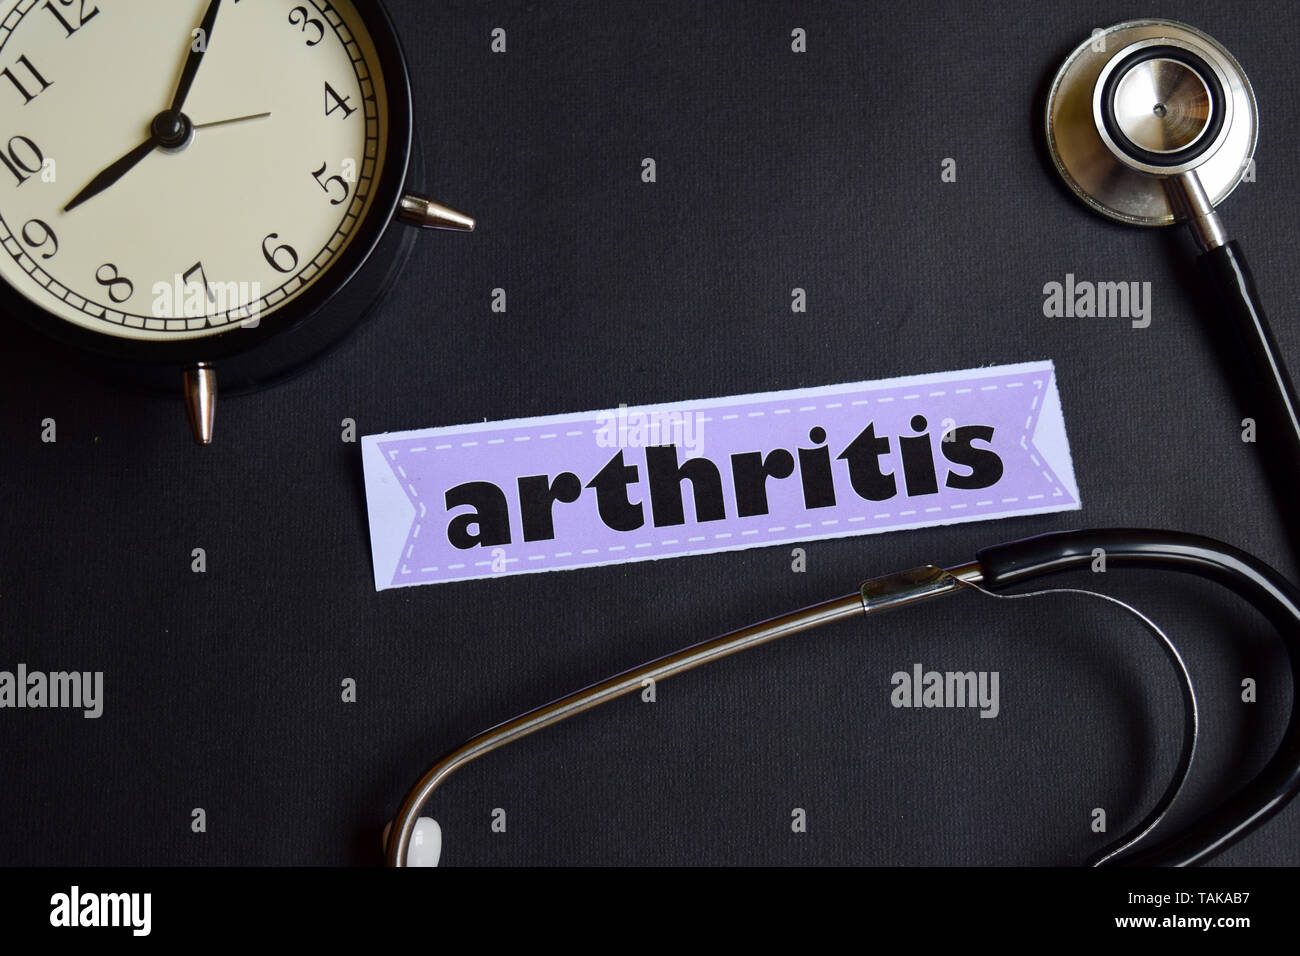 arthritis on the paper with Healthcare Concept Inspiration. alarm clock, Black stethoscope. - Stock Image